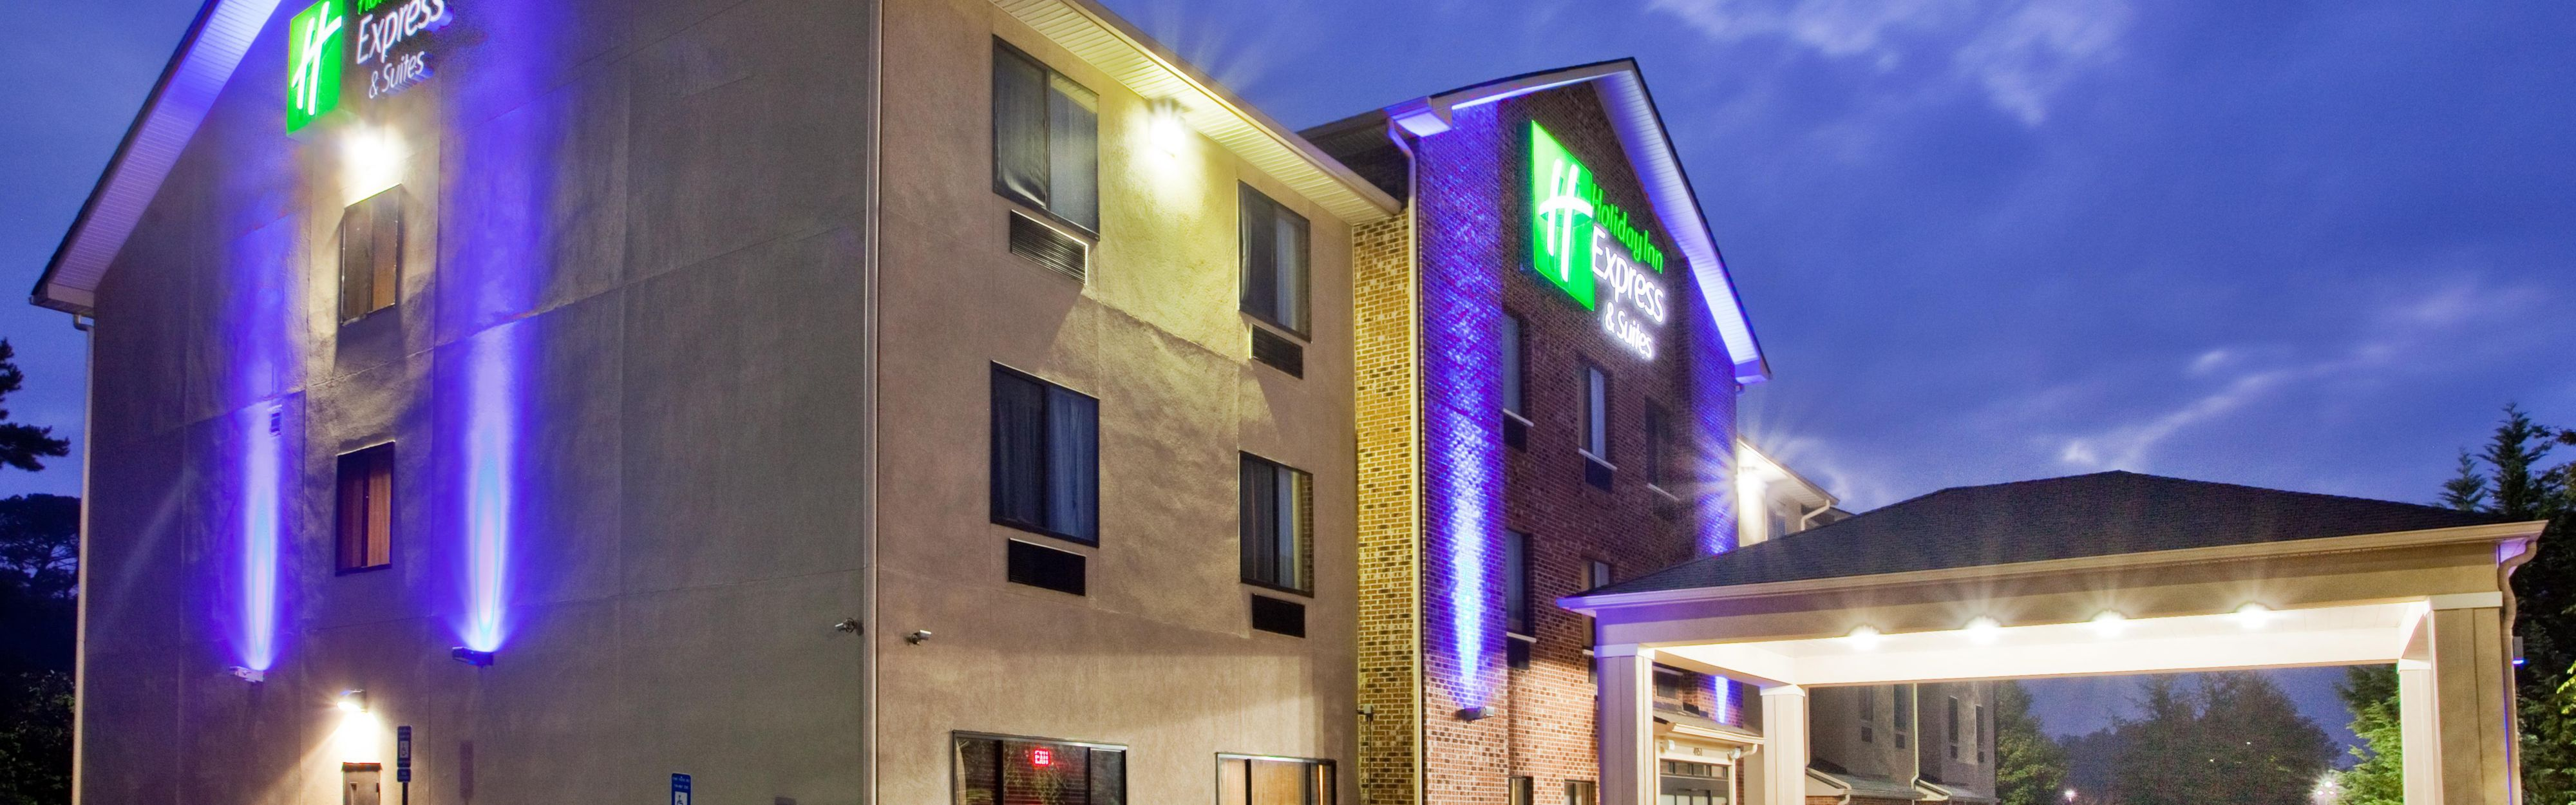 Holiday Inn Express & Suites Buford NE - Lake Lanier Area image 0